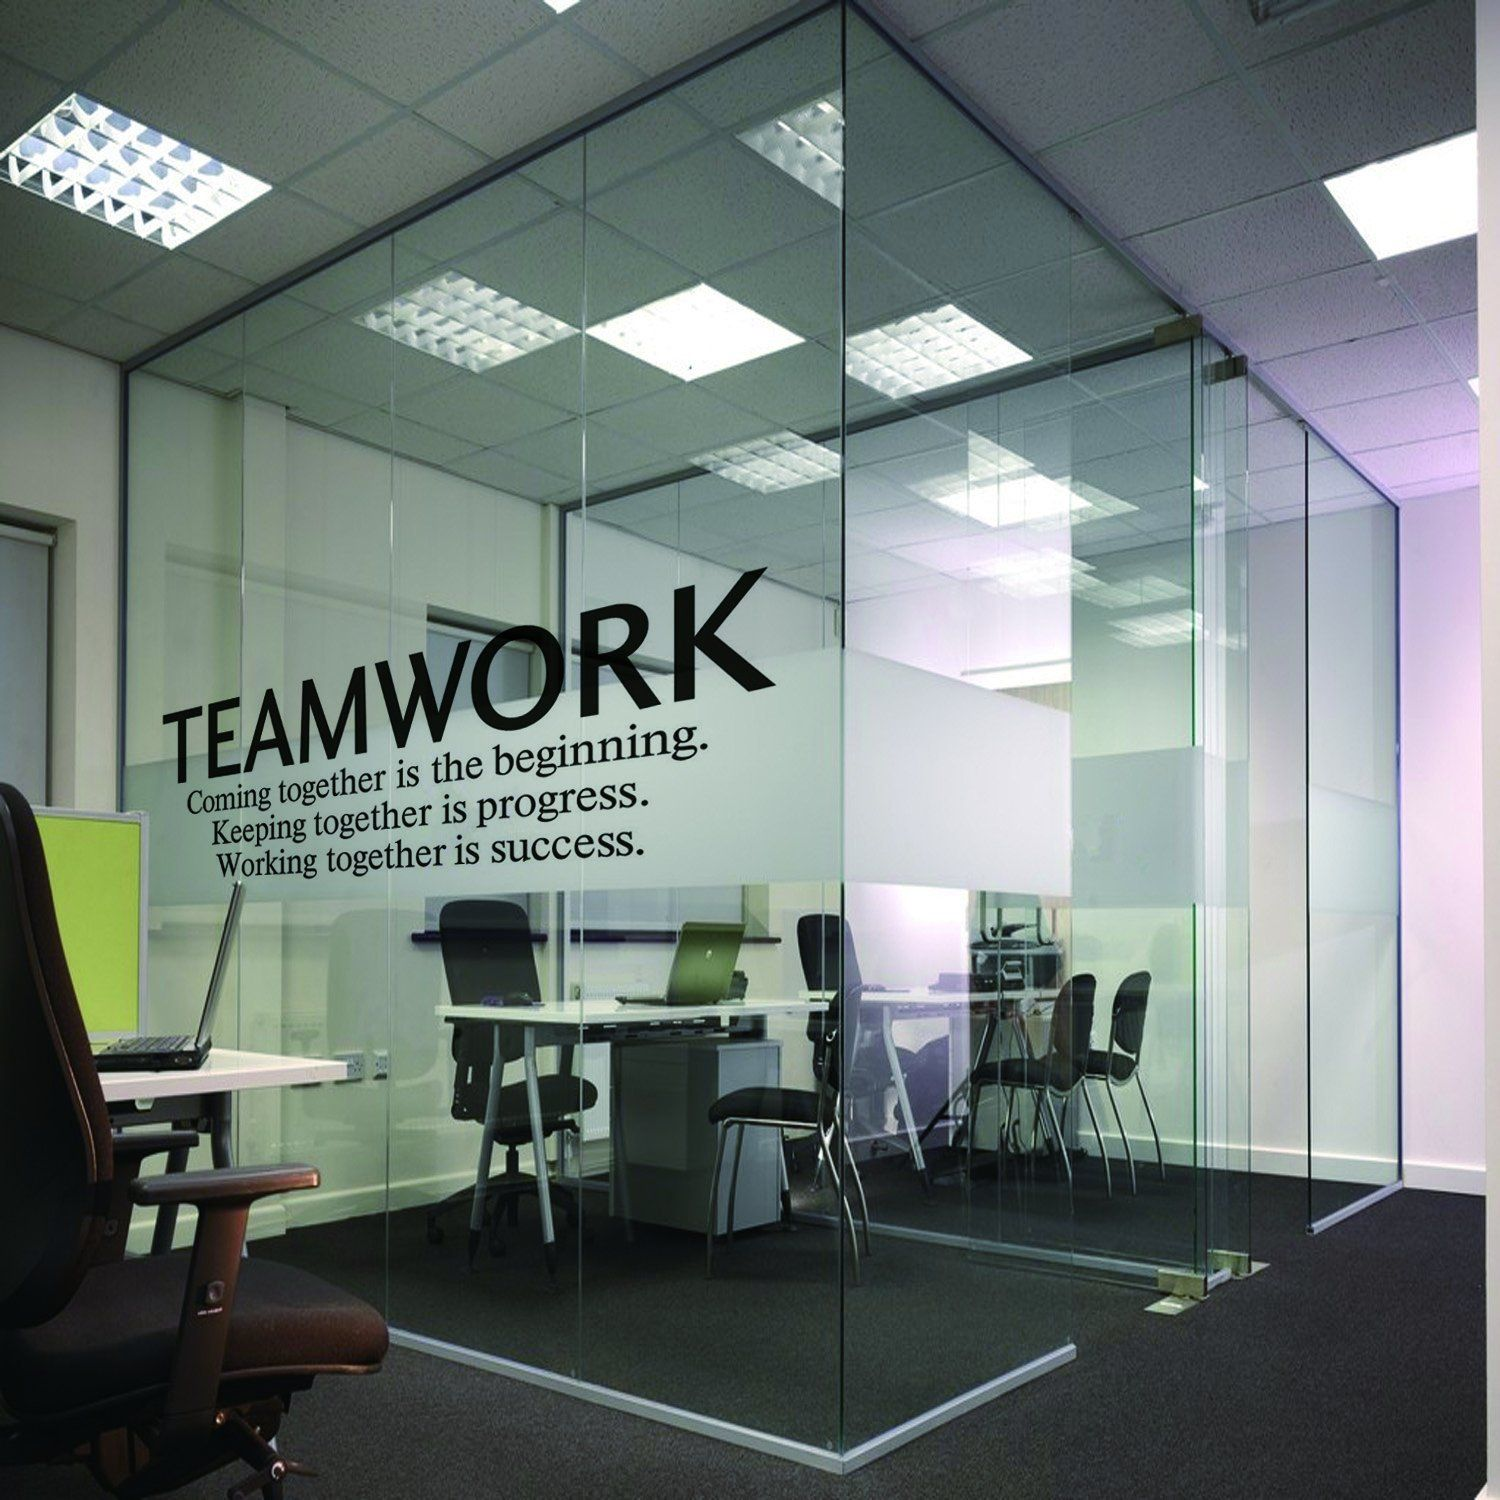 Amazon.com: N.SunForest Quotes Wall Decal Teamwork Definition Office ...